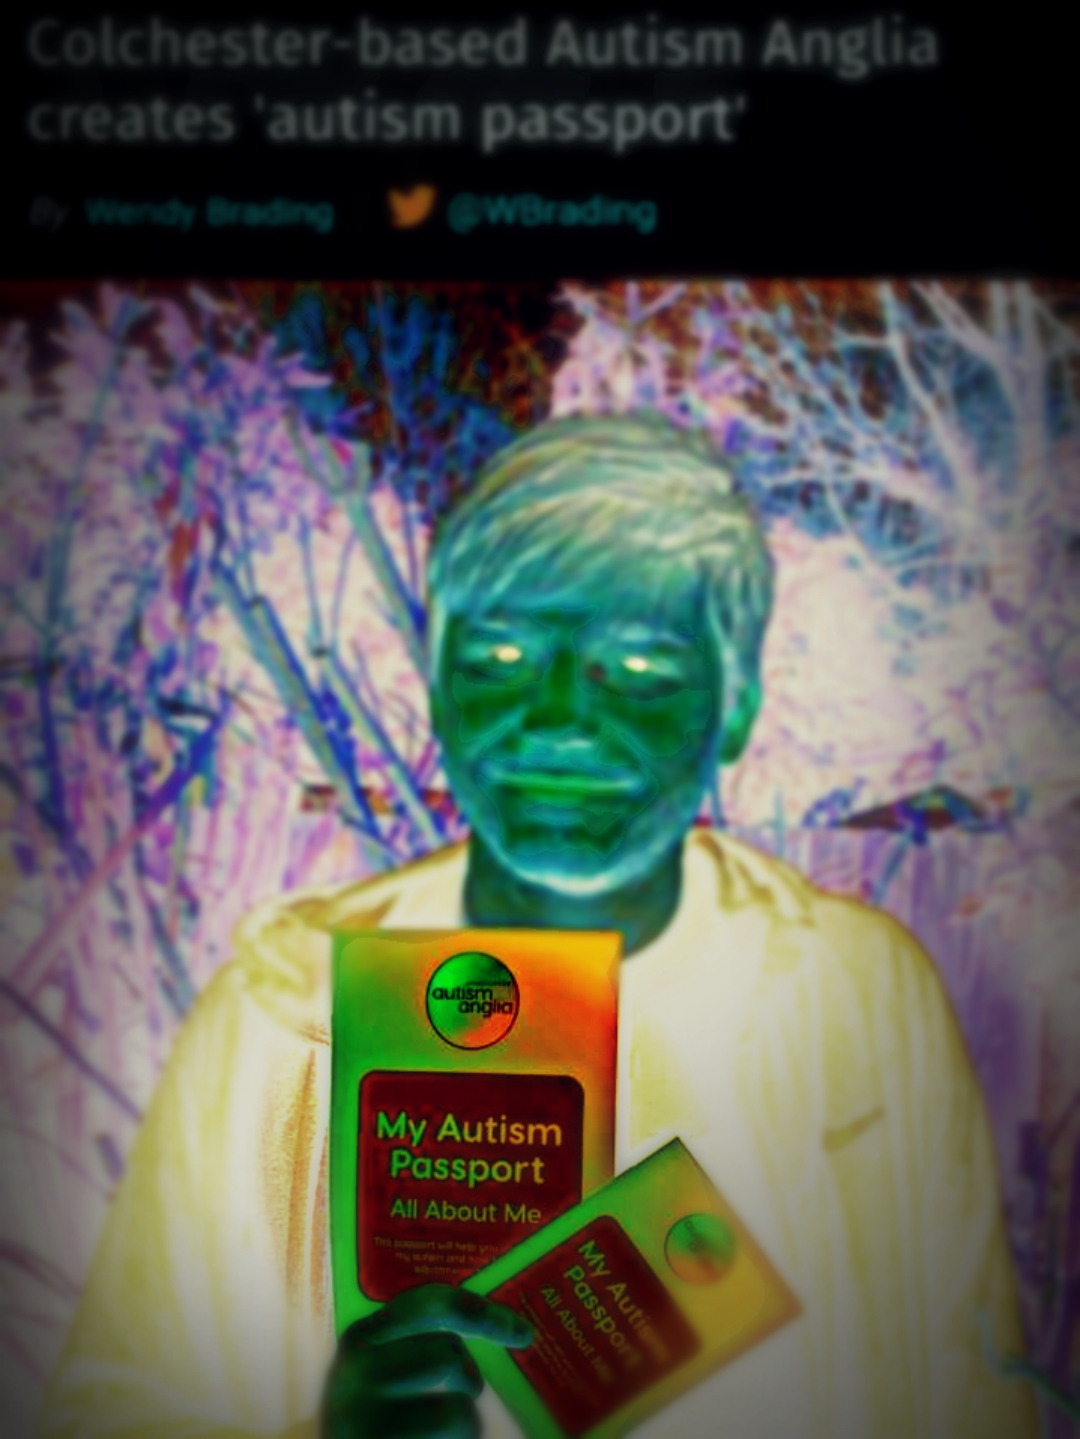 """Modified photo of photogenic young man holding a colorful """"Autism Passport,"""" from the Gazette News, """"Colchester-Based Autism Anglia Creates Autism Passport."""""""